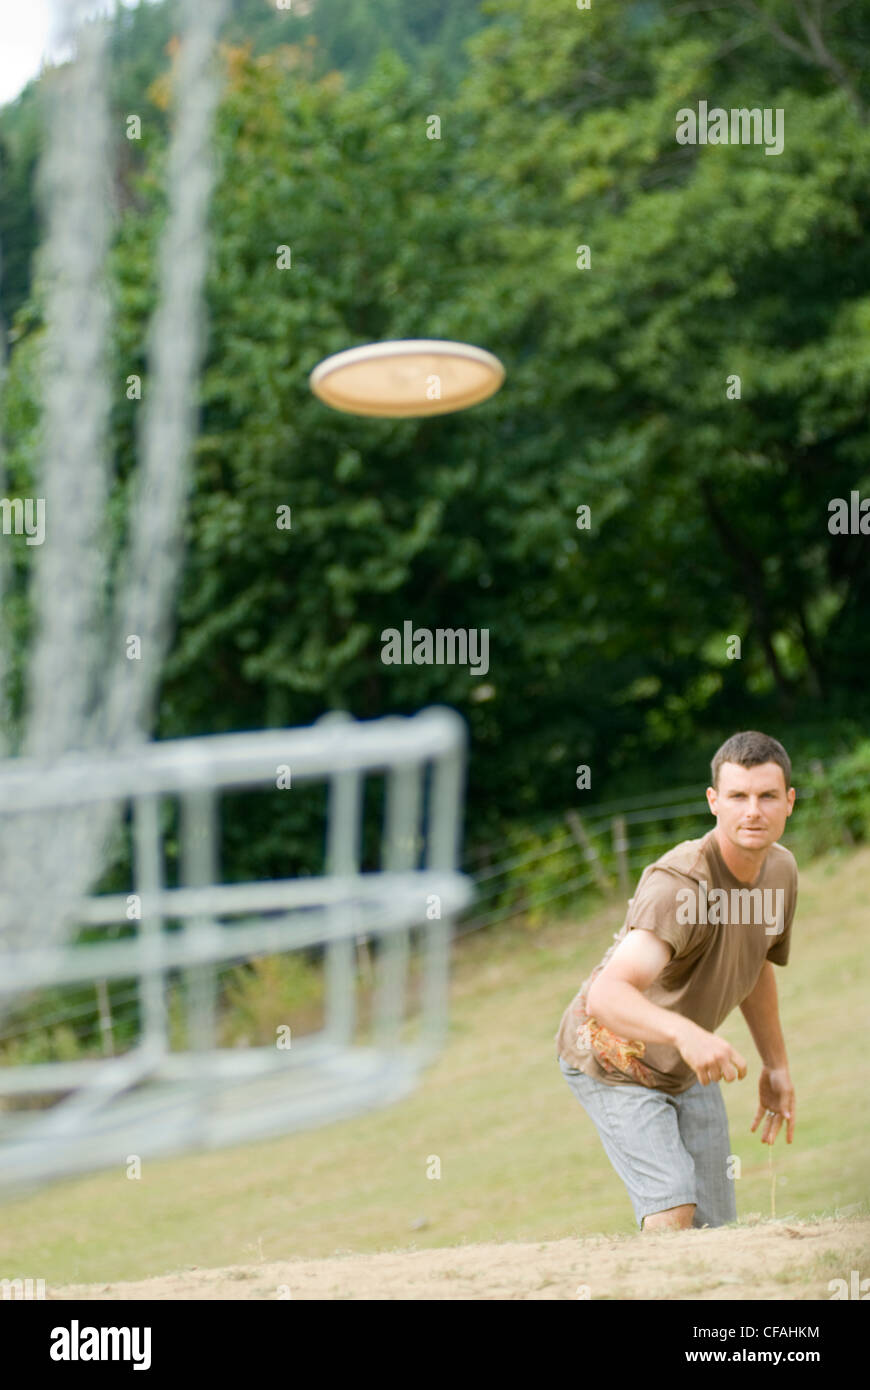 Man putting with frisbee while playing a round of disc golf, near Victoria, British Columbia, Canada - Stock Image